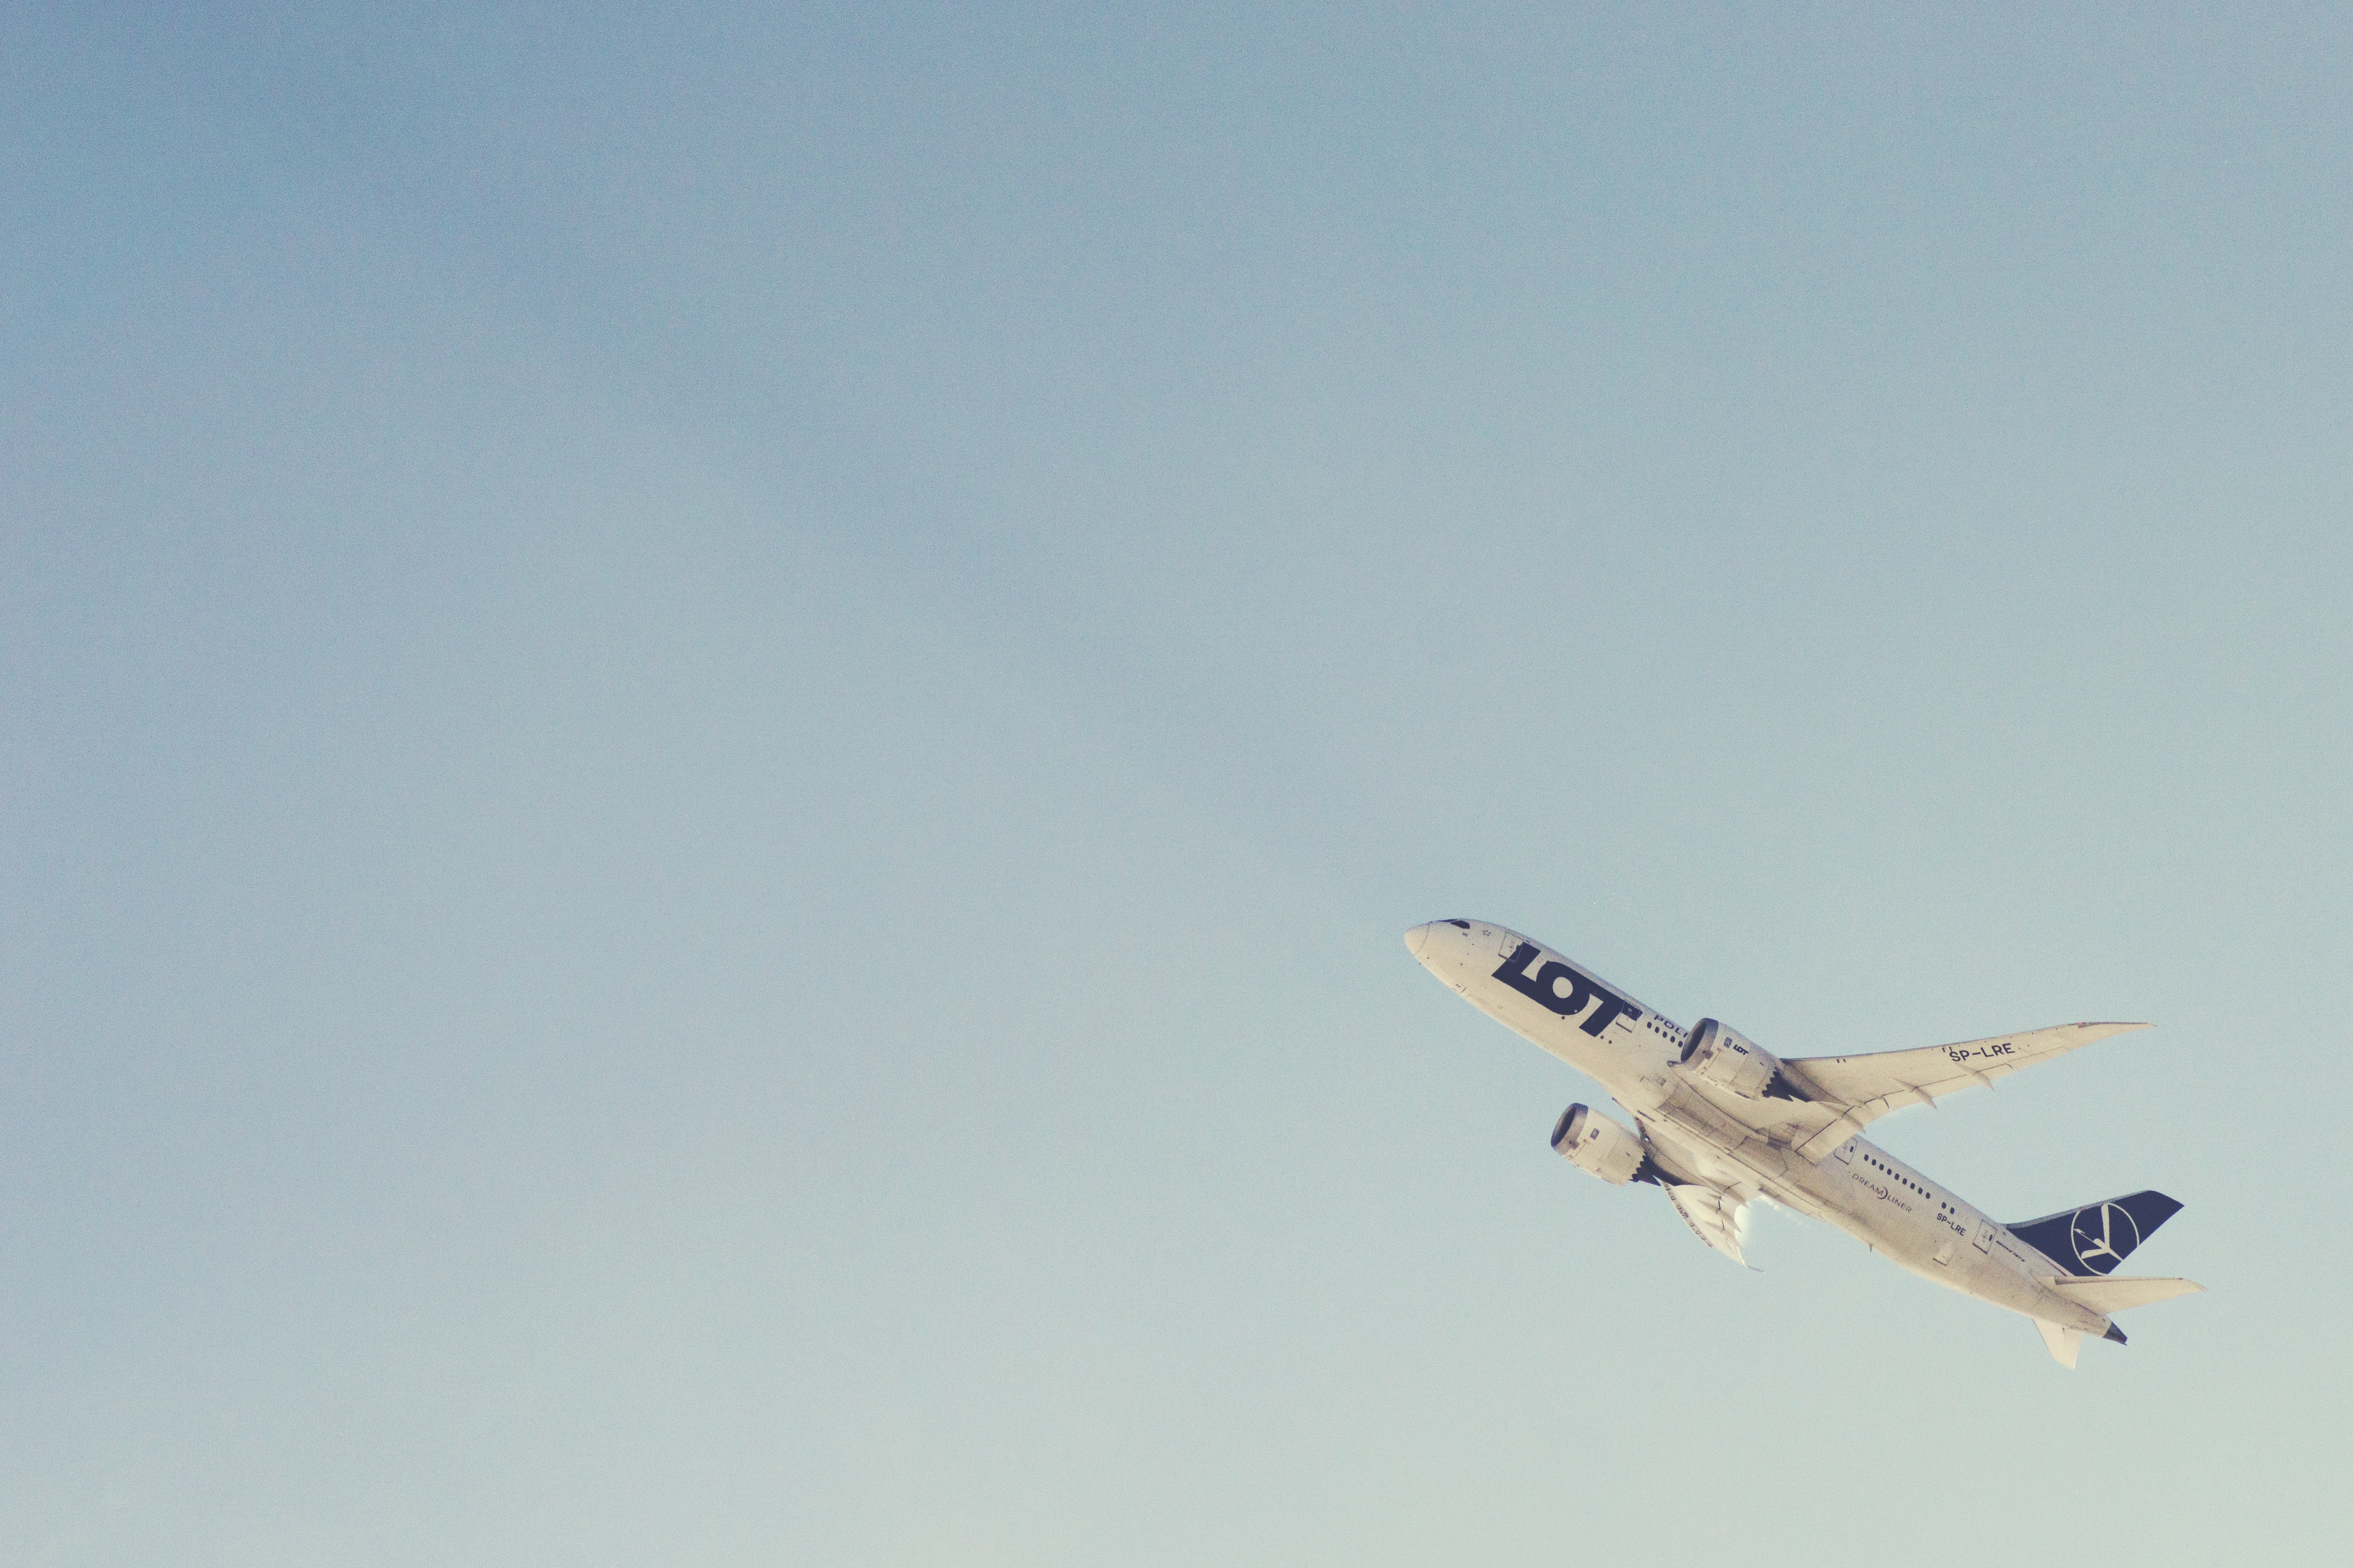 white passenger plane taking off through the sky